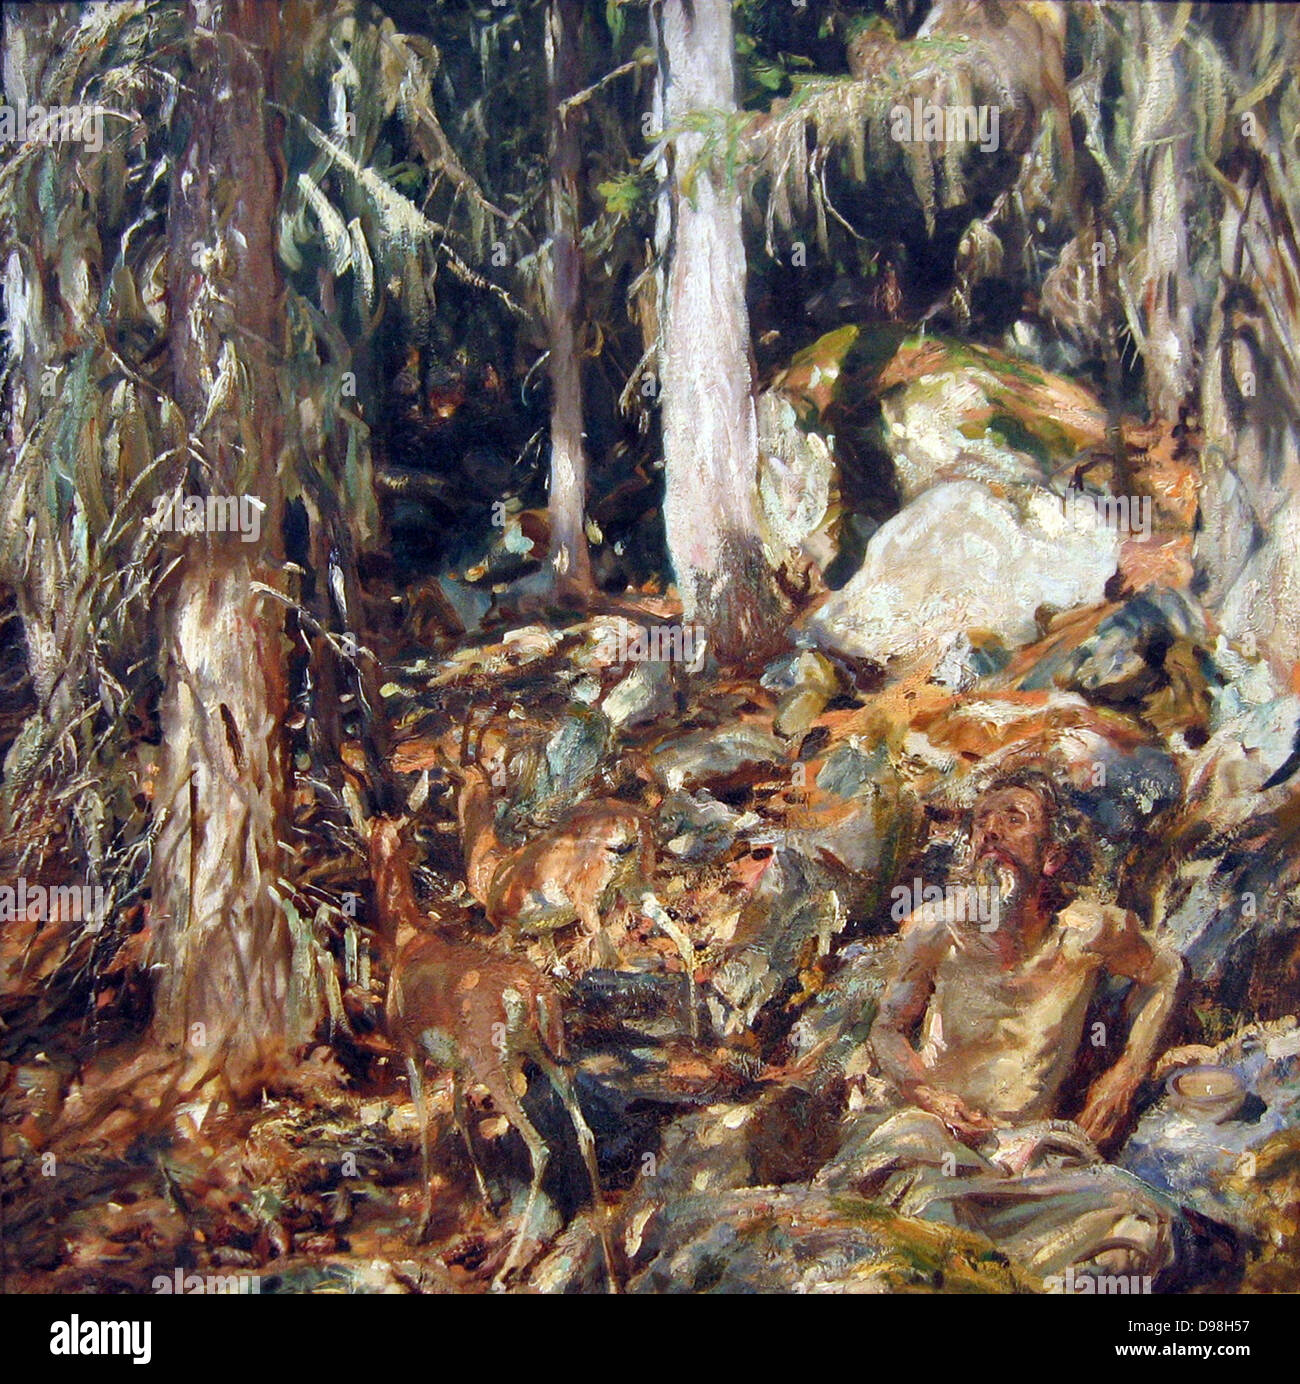 John Singer Sargent (January 12, 1856 – April 14, 1925) was an American painter The Hermit 1908 - Stock Image